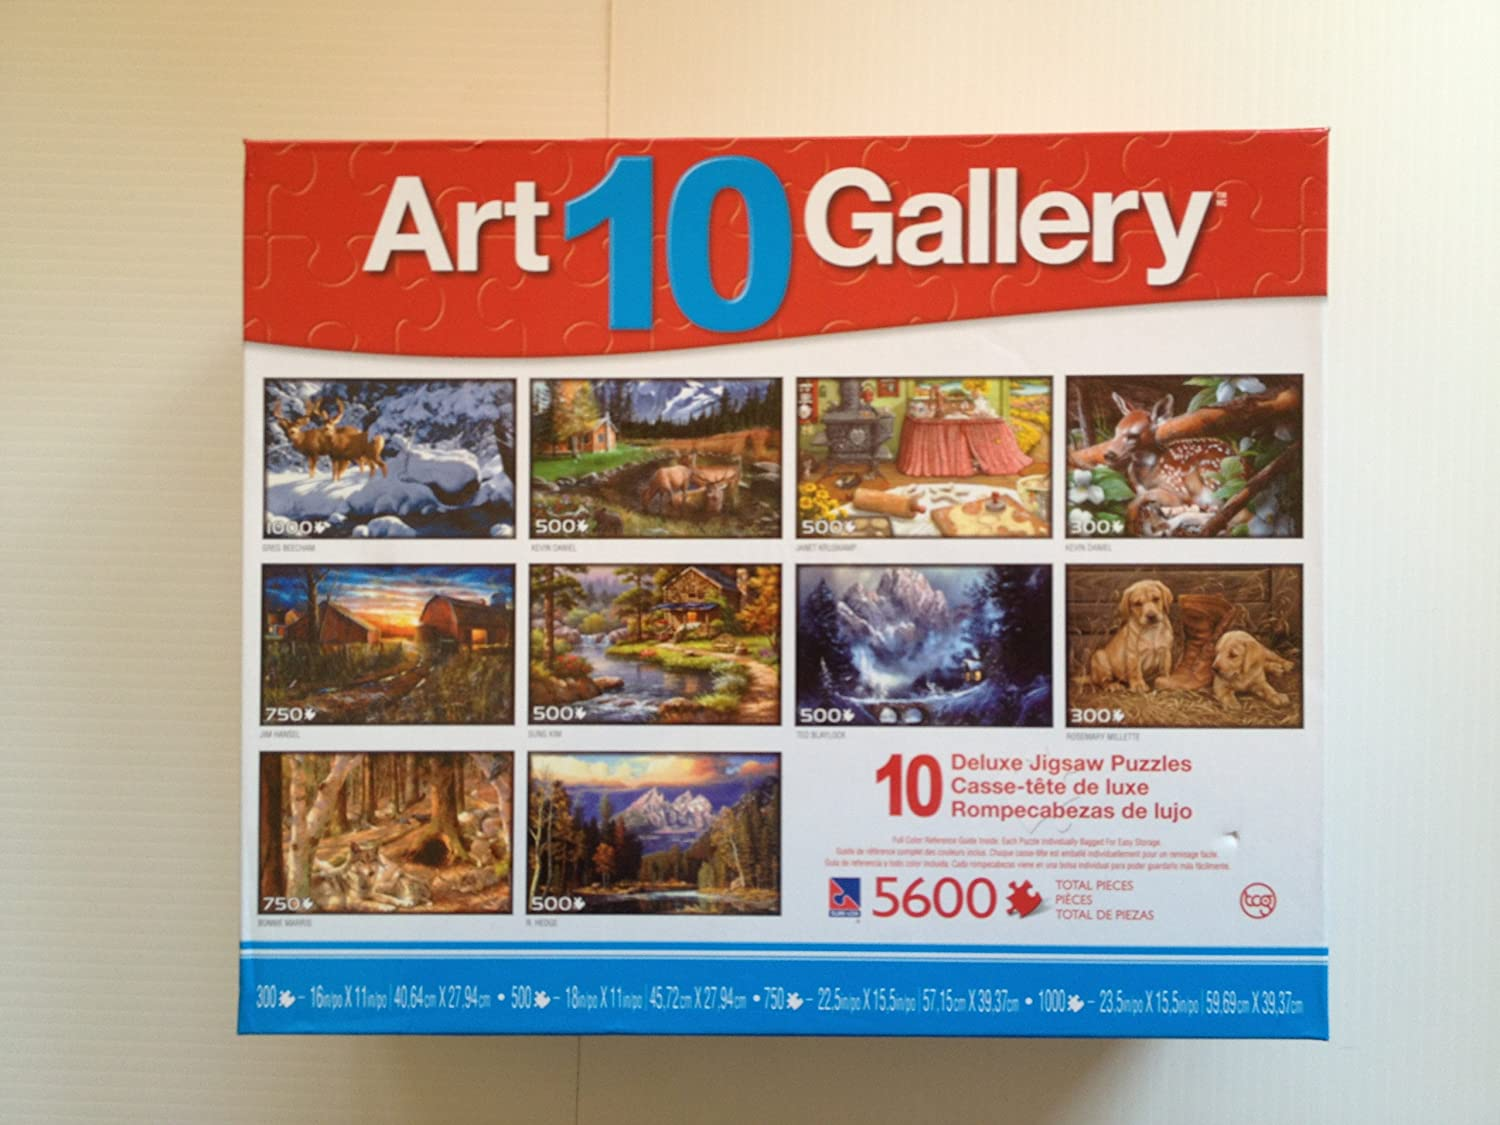 Art Gallery  10 Deluxe Jigsaw Puzzles (5600 Total Pieces)